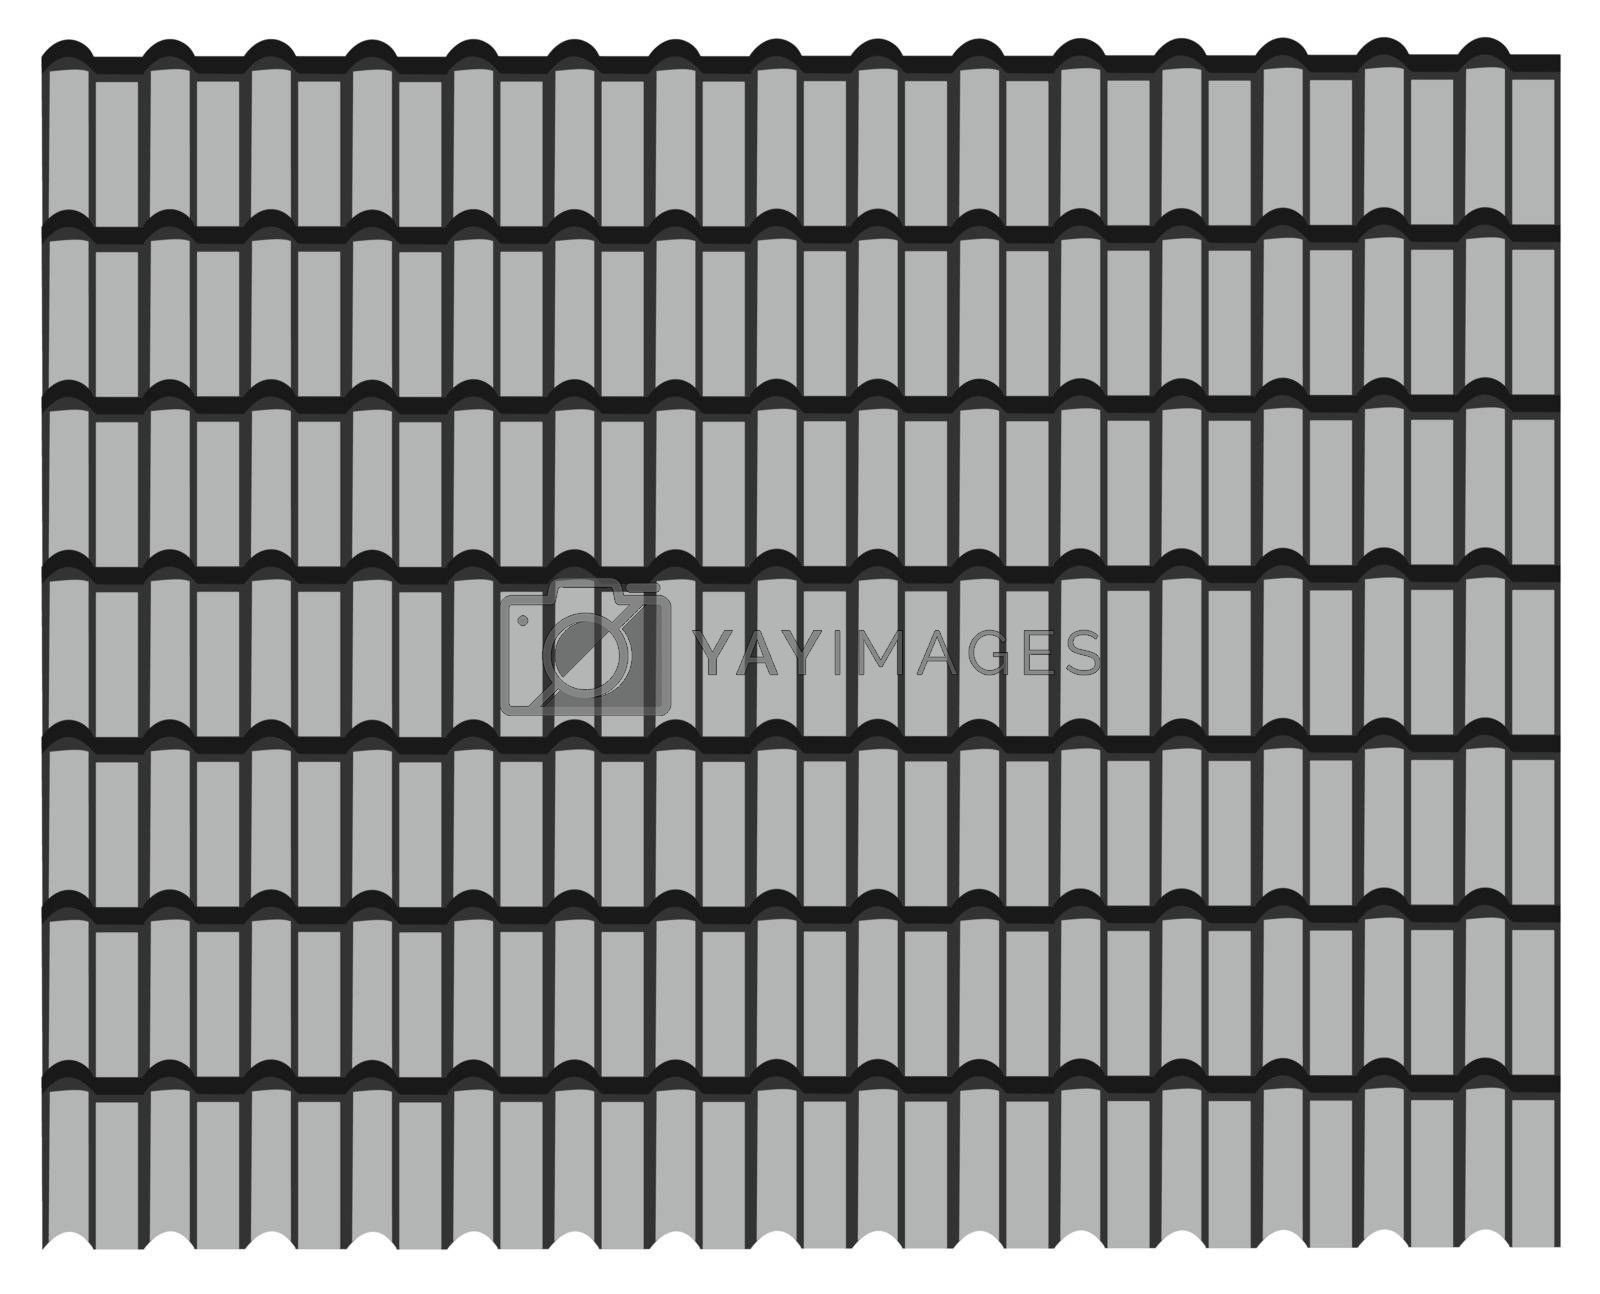 group of gray tiles roof, pattern texture gray background.